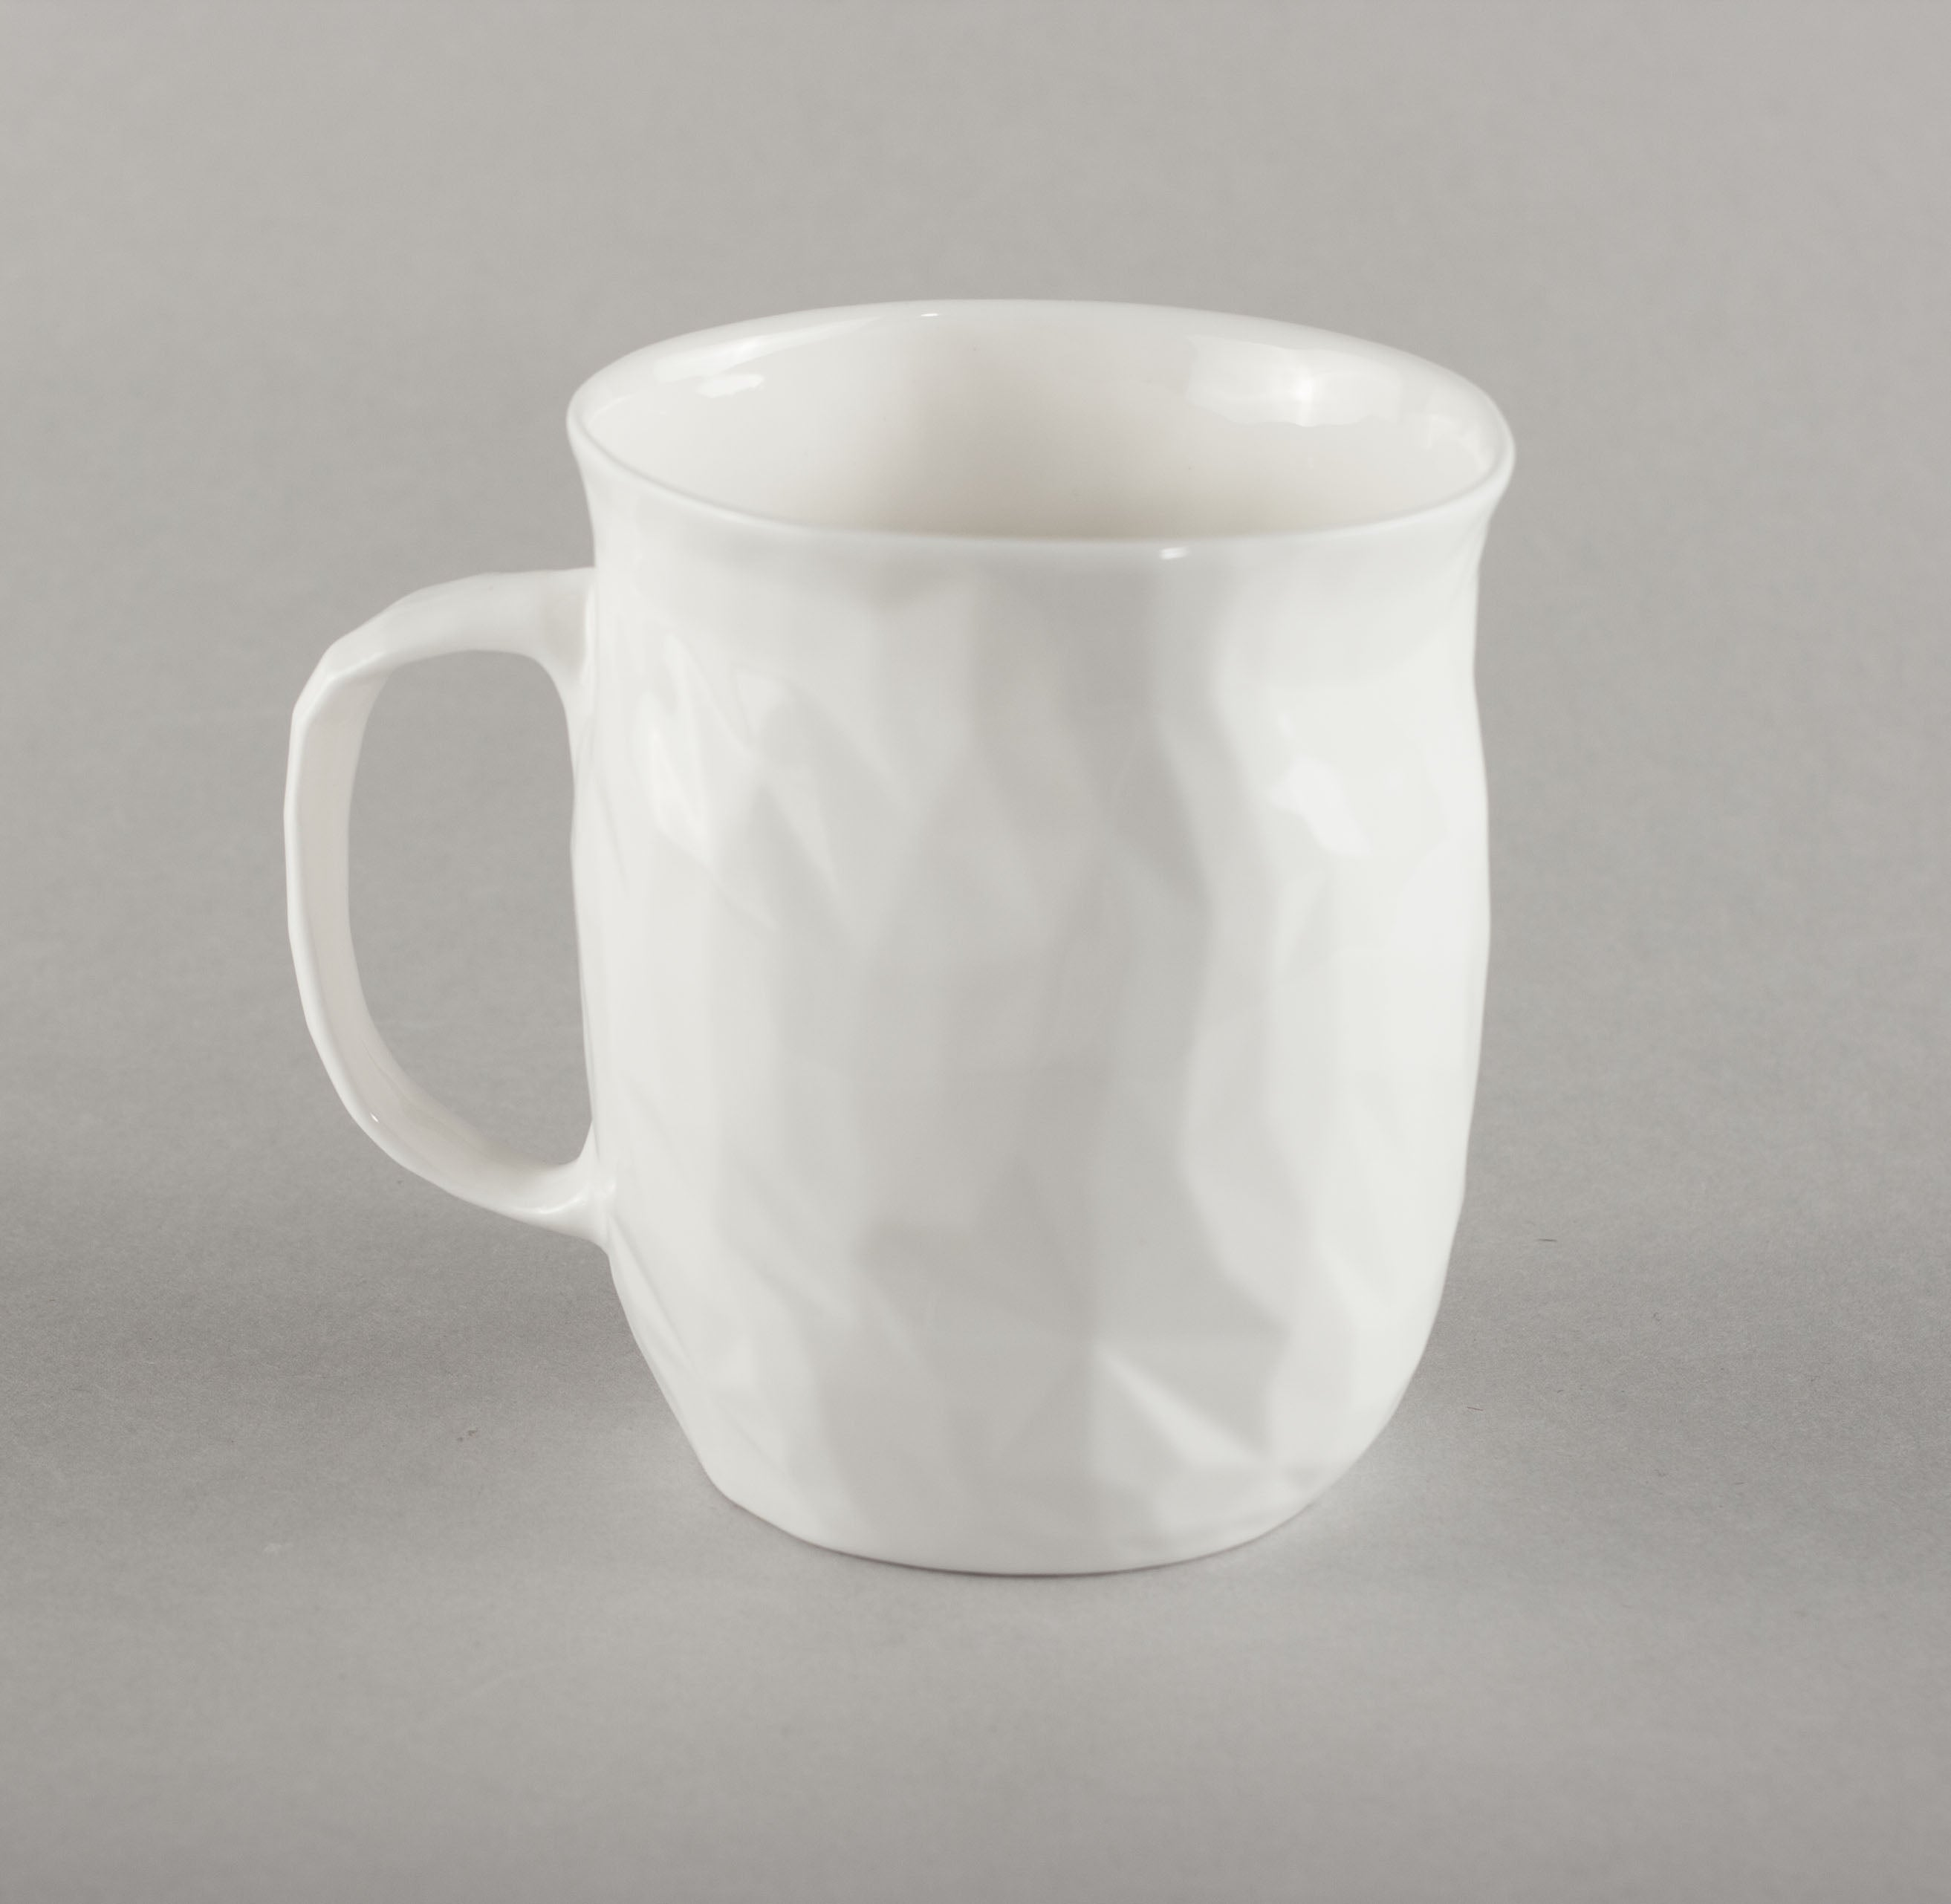 Porcelain Mug Brilliant